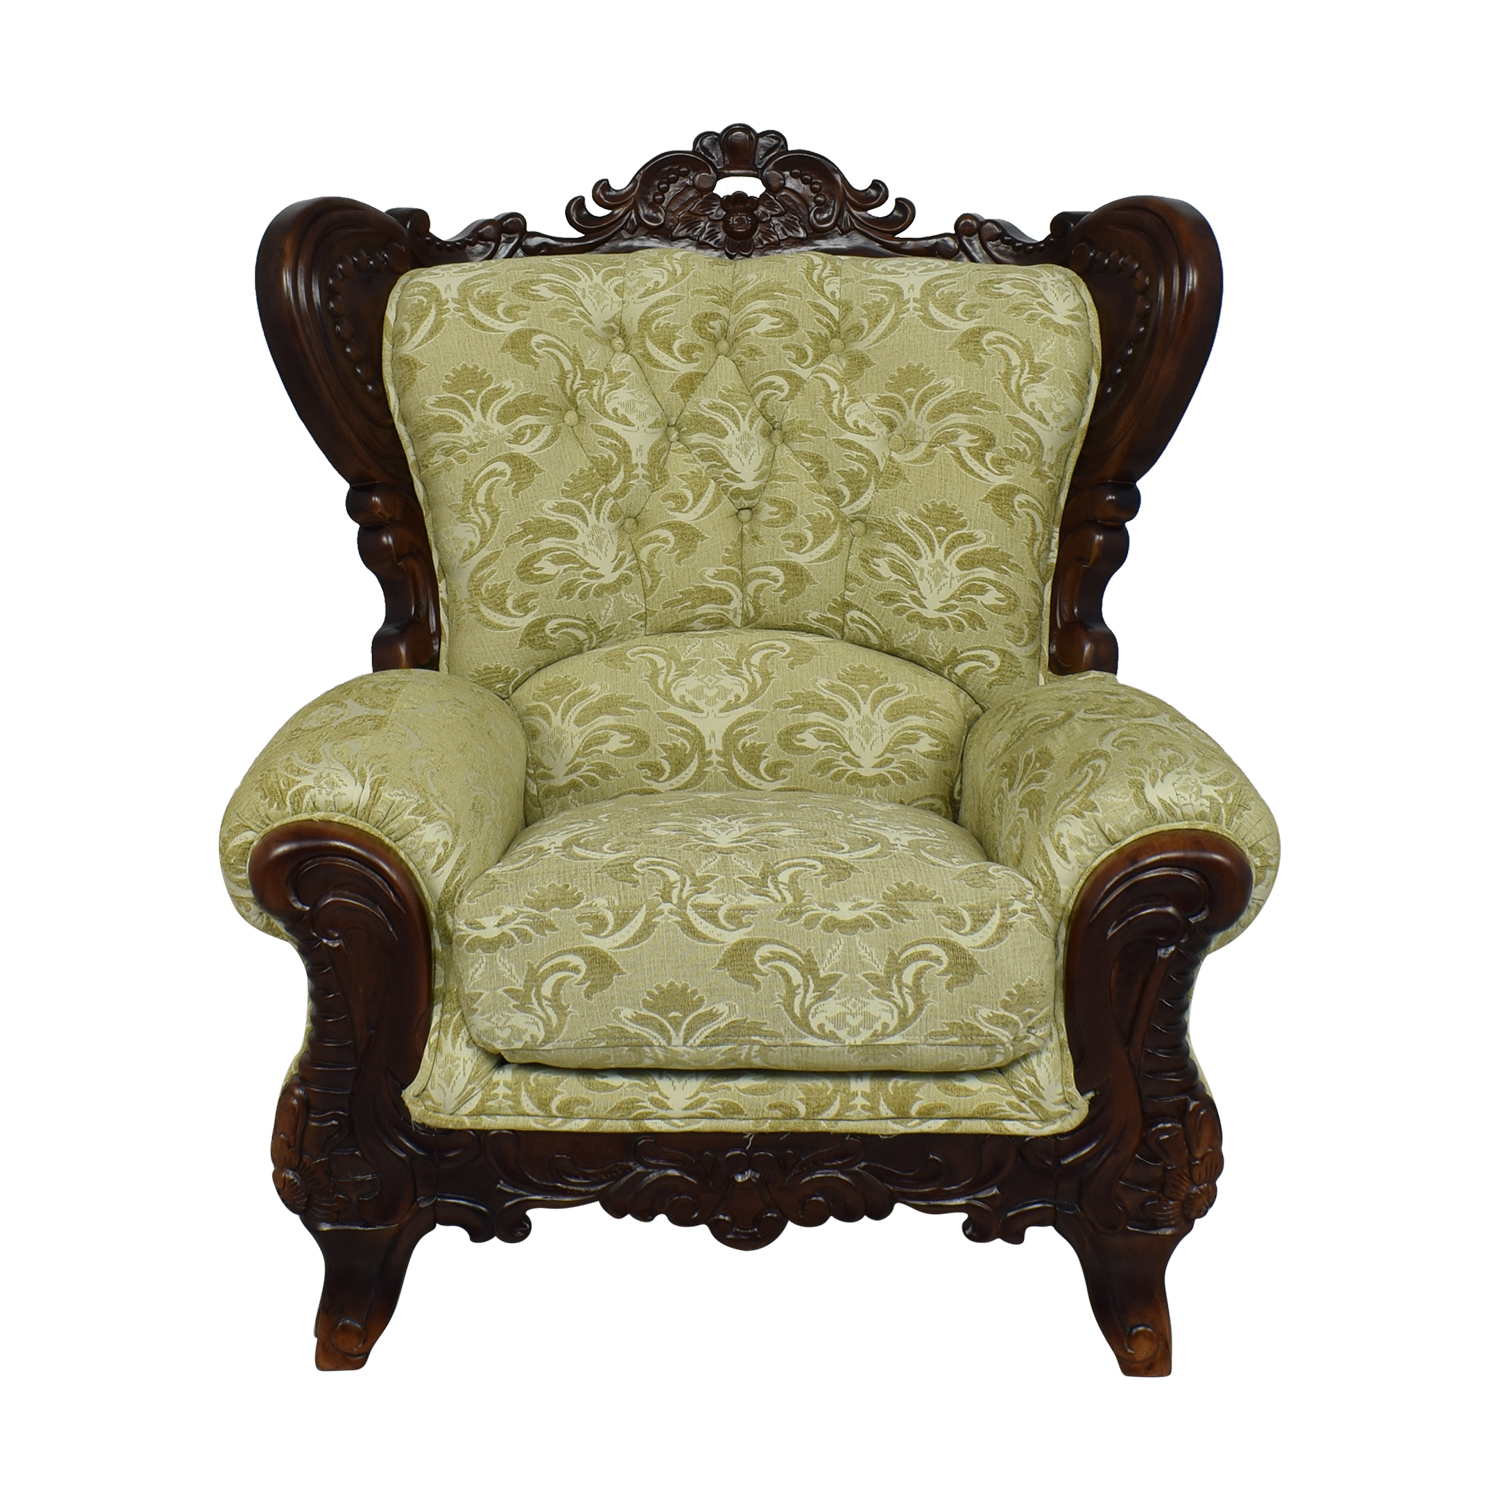 Ethan Allen Ethan Allen Ornate Arm Chair yellow & brown